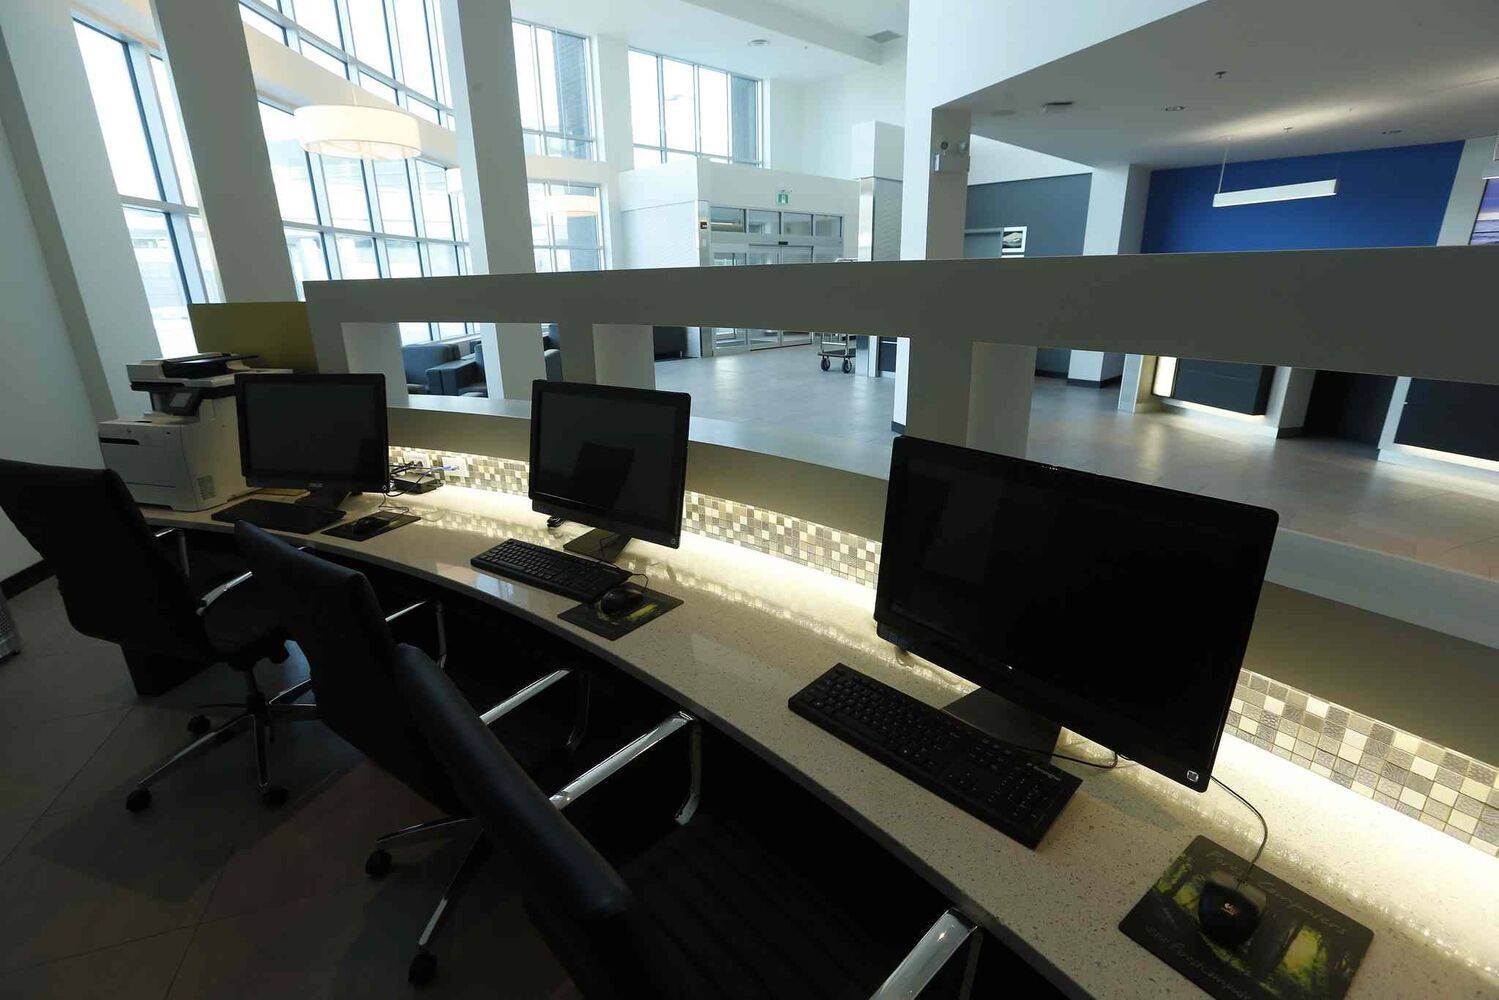 The business centre in the lobby. (KEN GIGLIOTTI / WINNIPEG FREE PRESS)